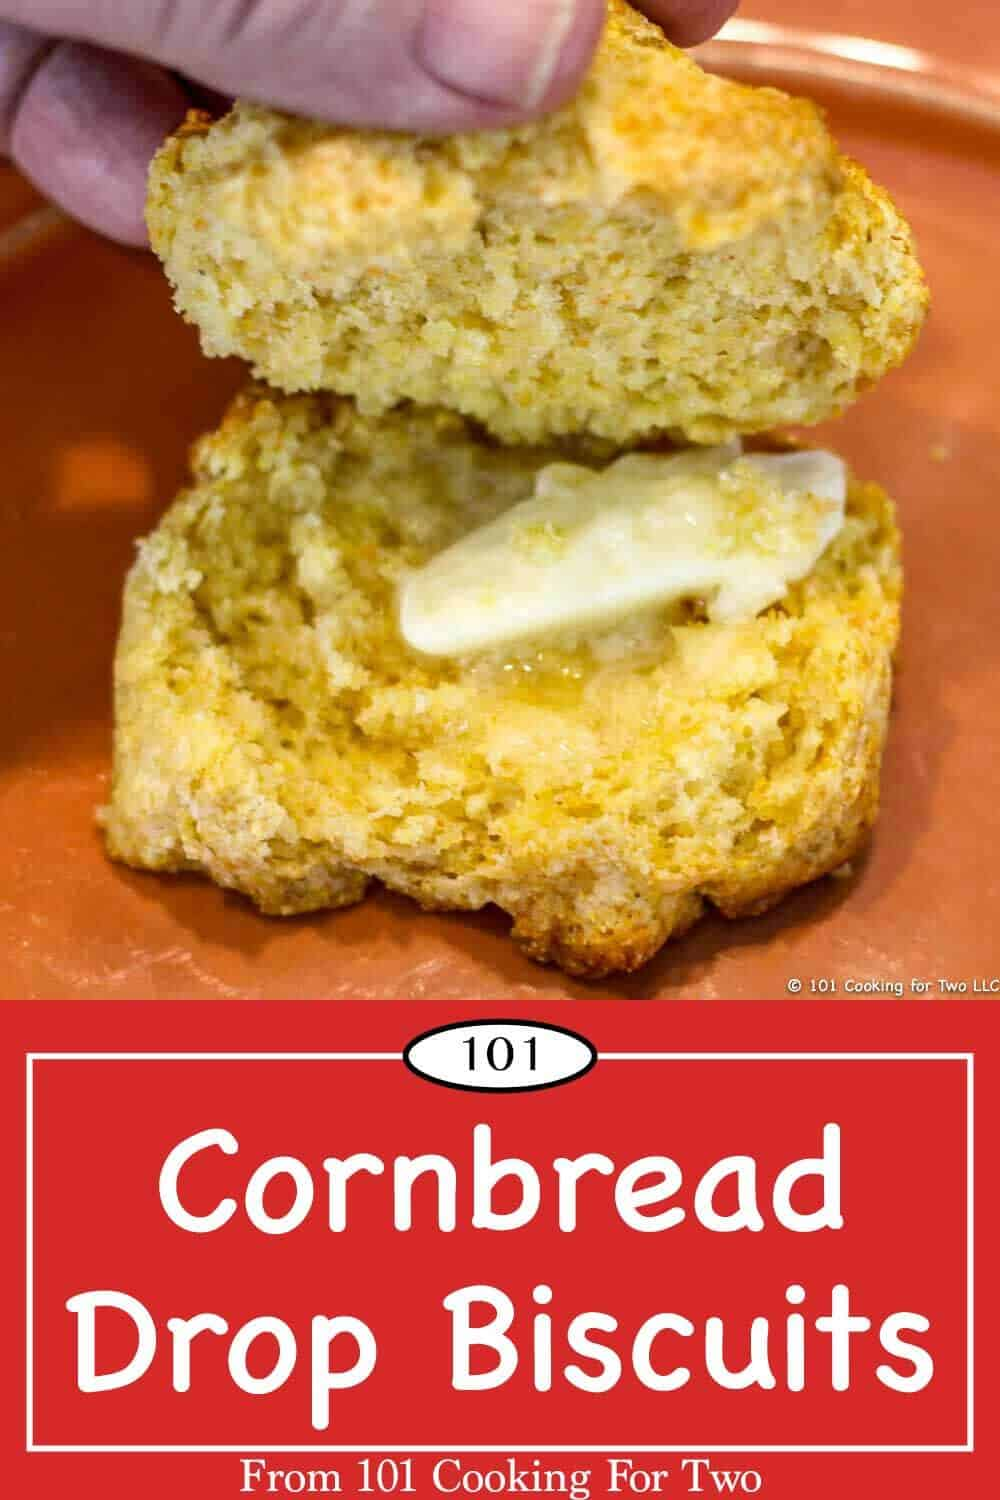 The great taste of cornbread with the ease and speed of drop biscuits. Just follow these easy step by step photo instructions. Perfect for chili, soups or other comfort foods. #CornbreadBiscuits #CornmealBiscuits #Cornbread